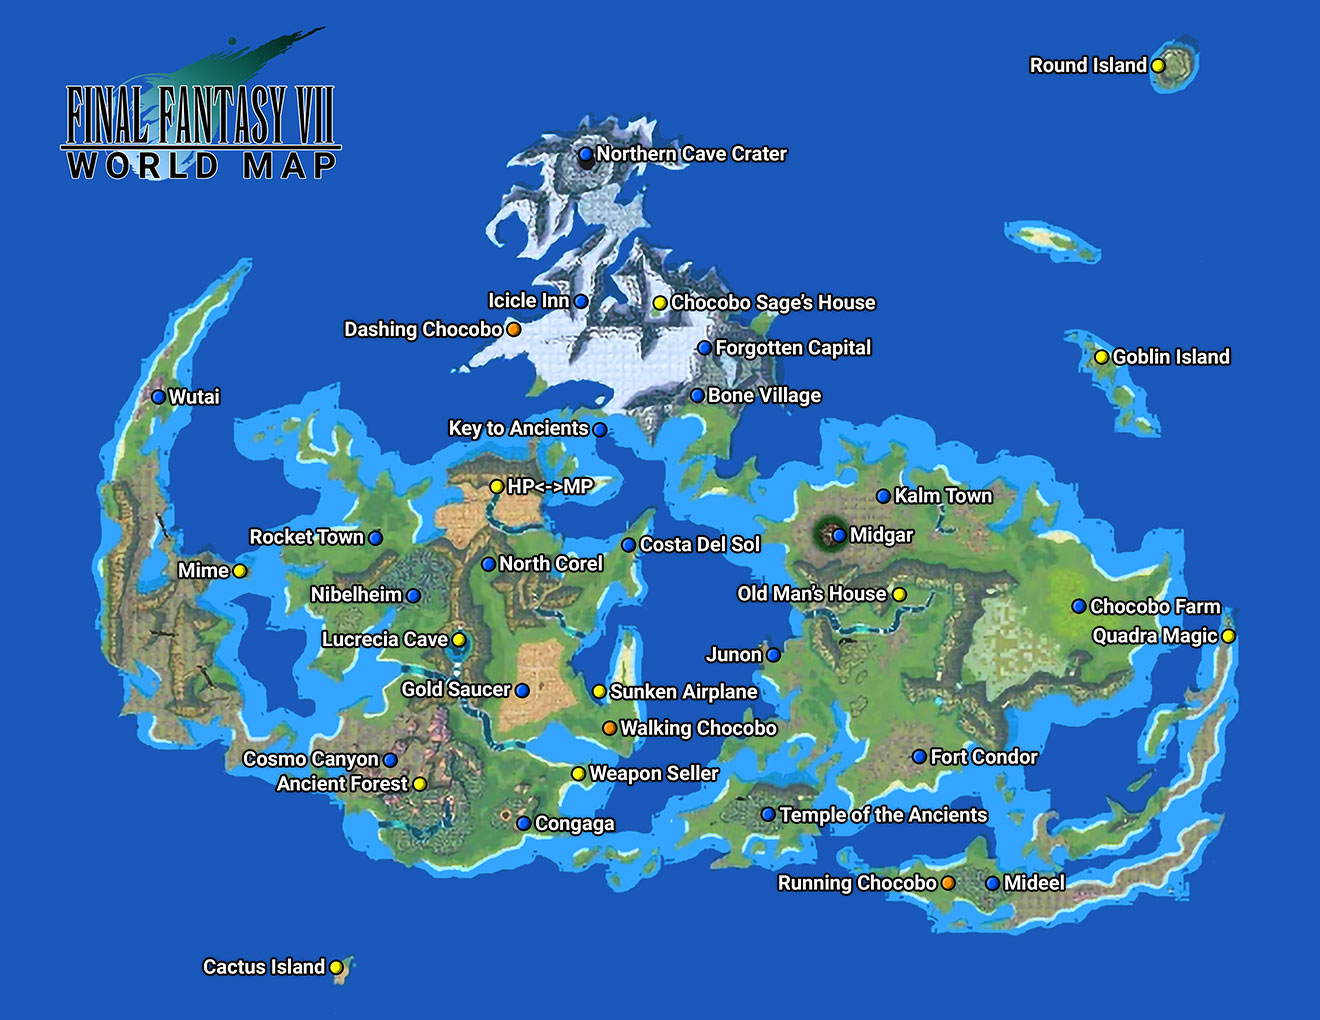 Final Fantasy VII - World Map